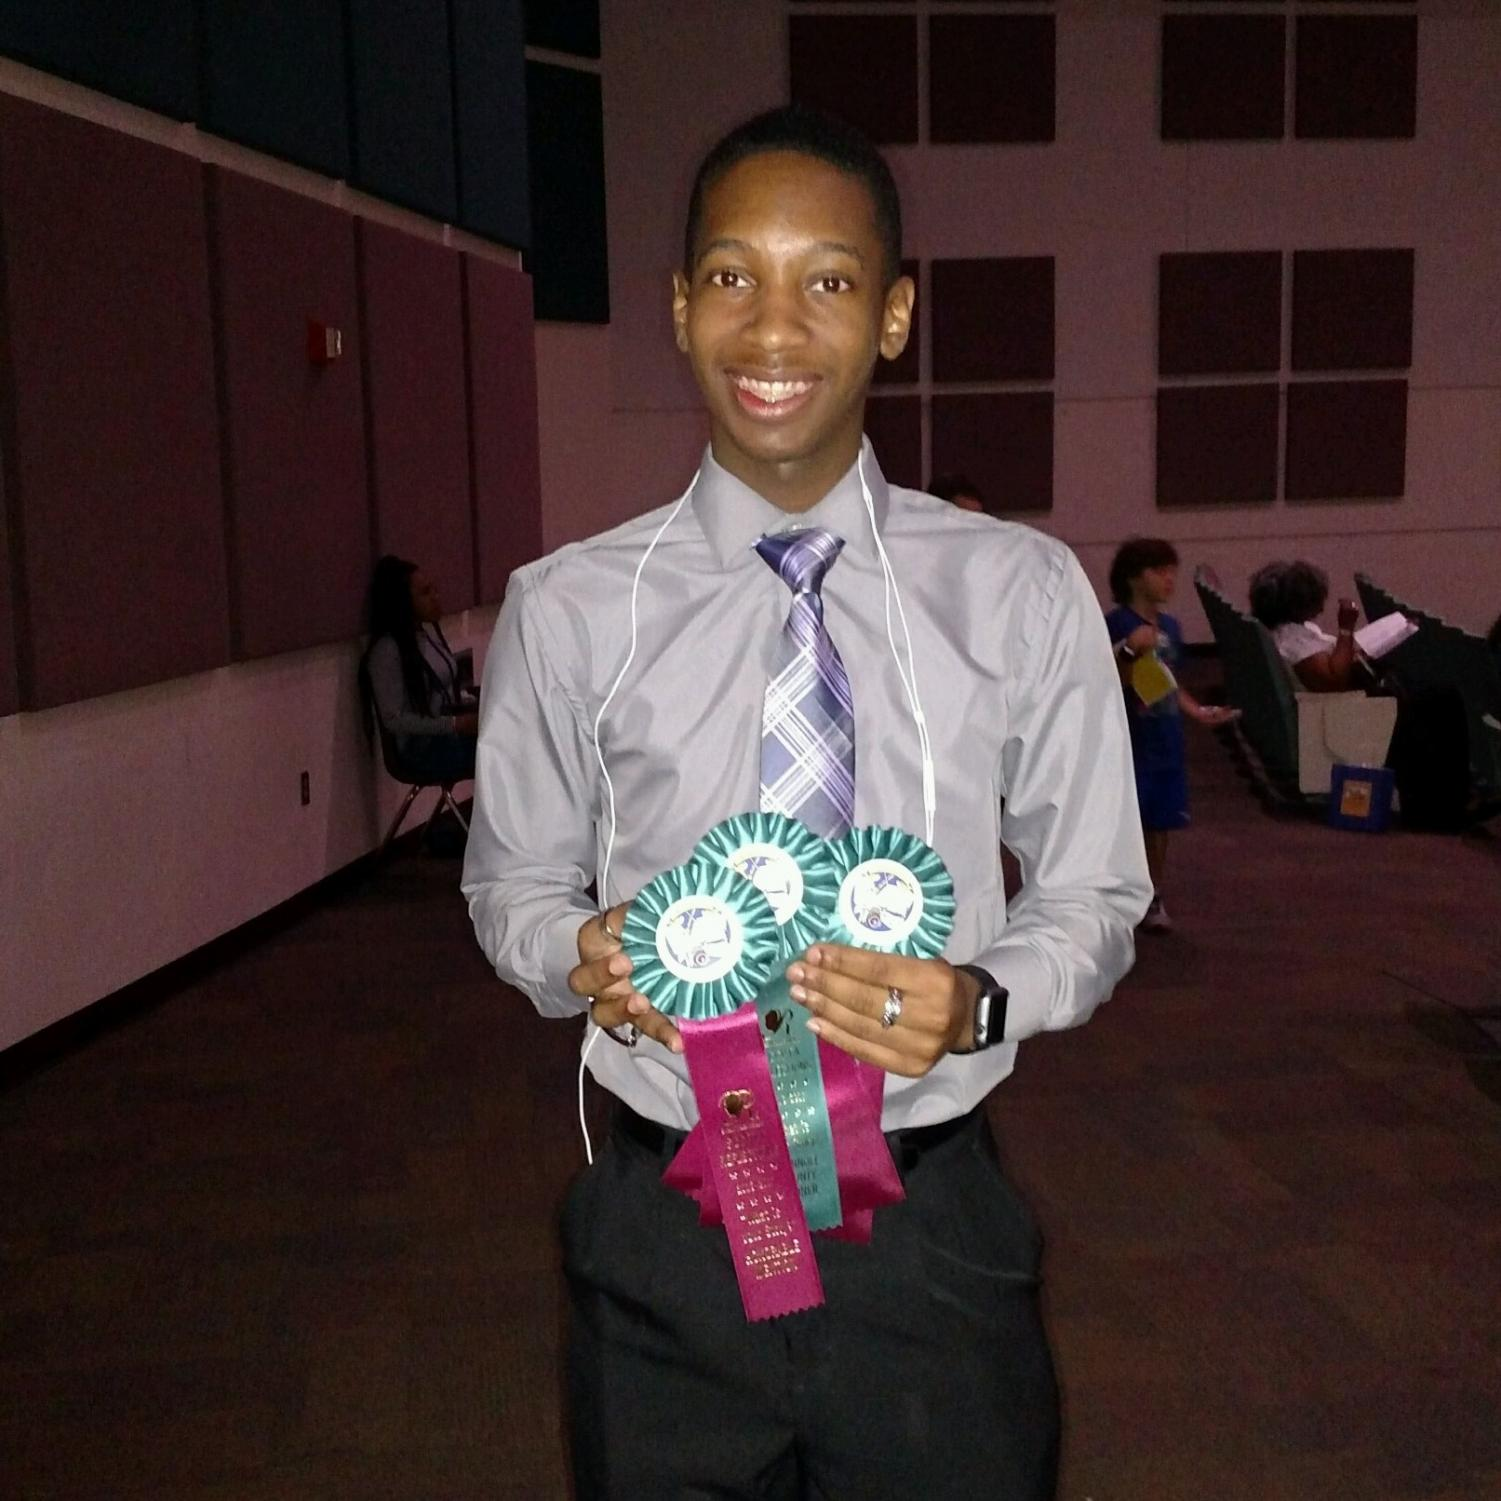 Last year junior Da'Zhaun Hicks won for dance choreography and received awards for music composition and literature. This year he is hoping to submit something again.